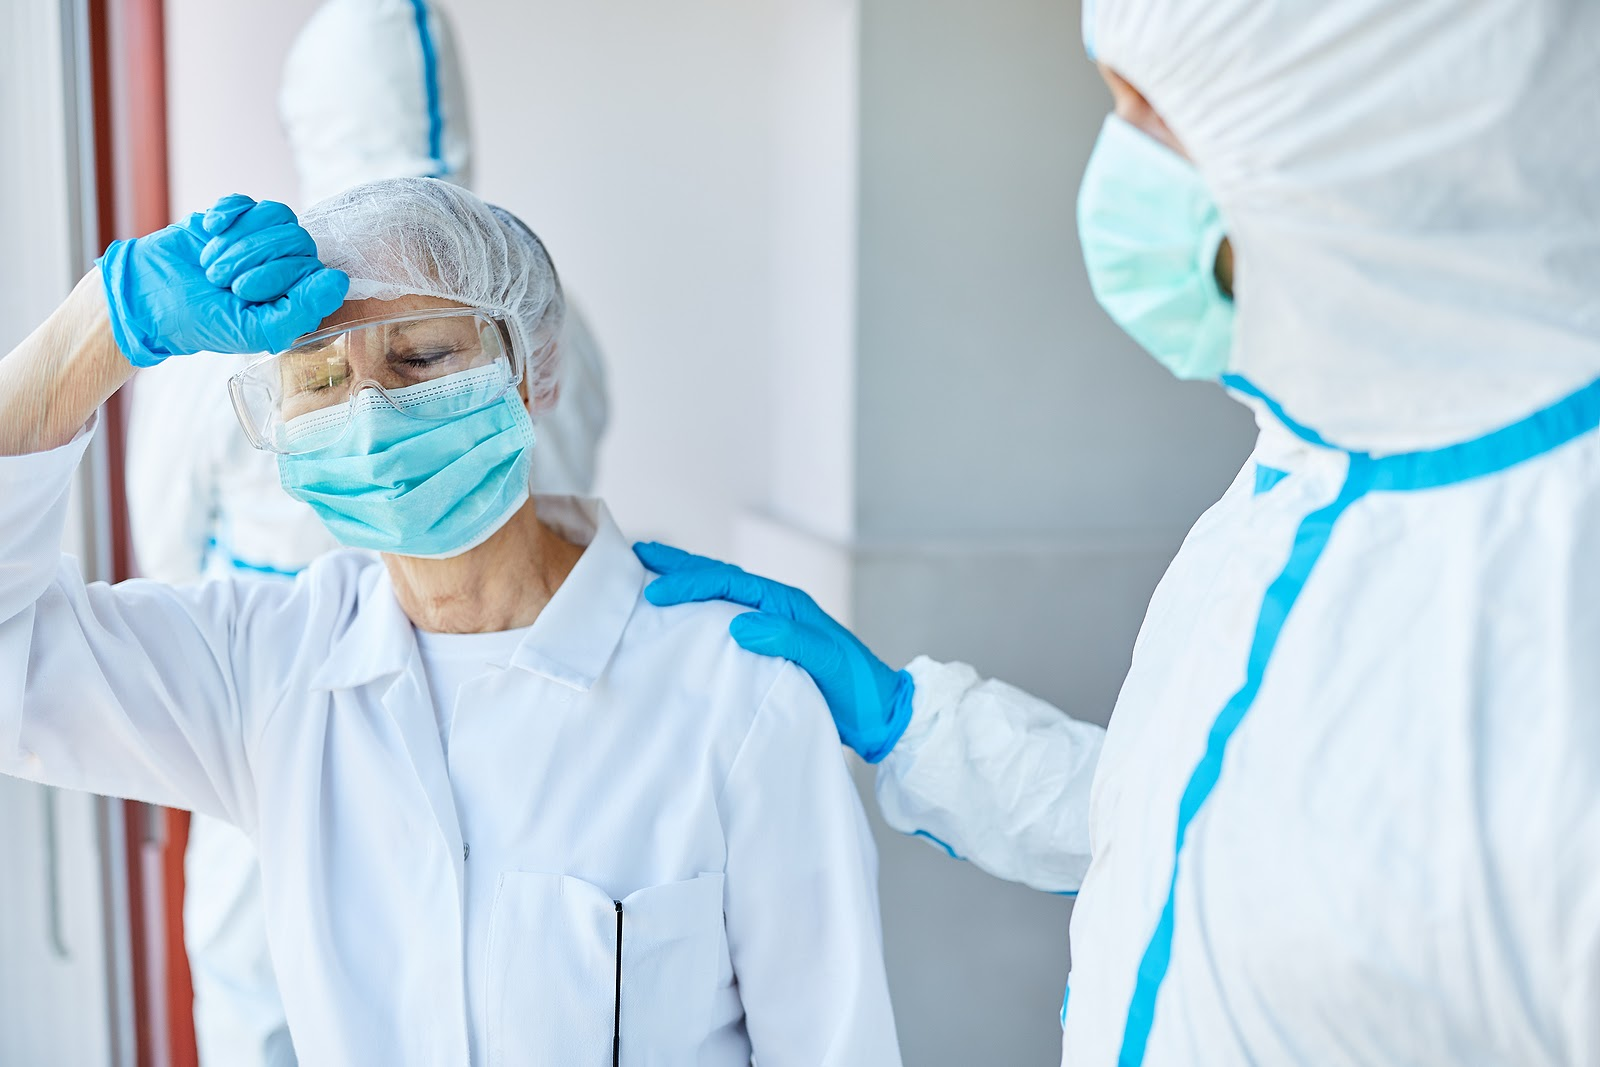 Two healthcare workers in PPE consoling each other.